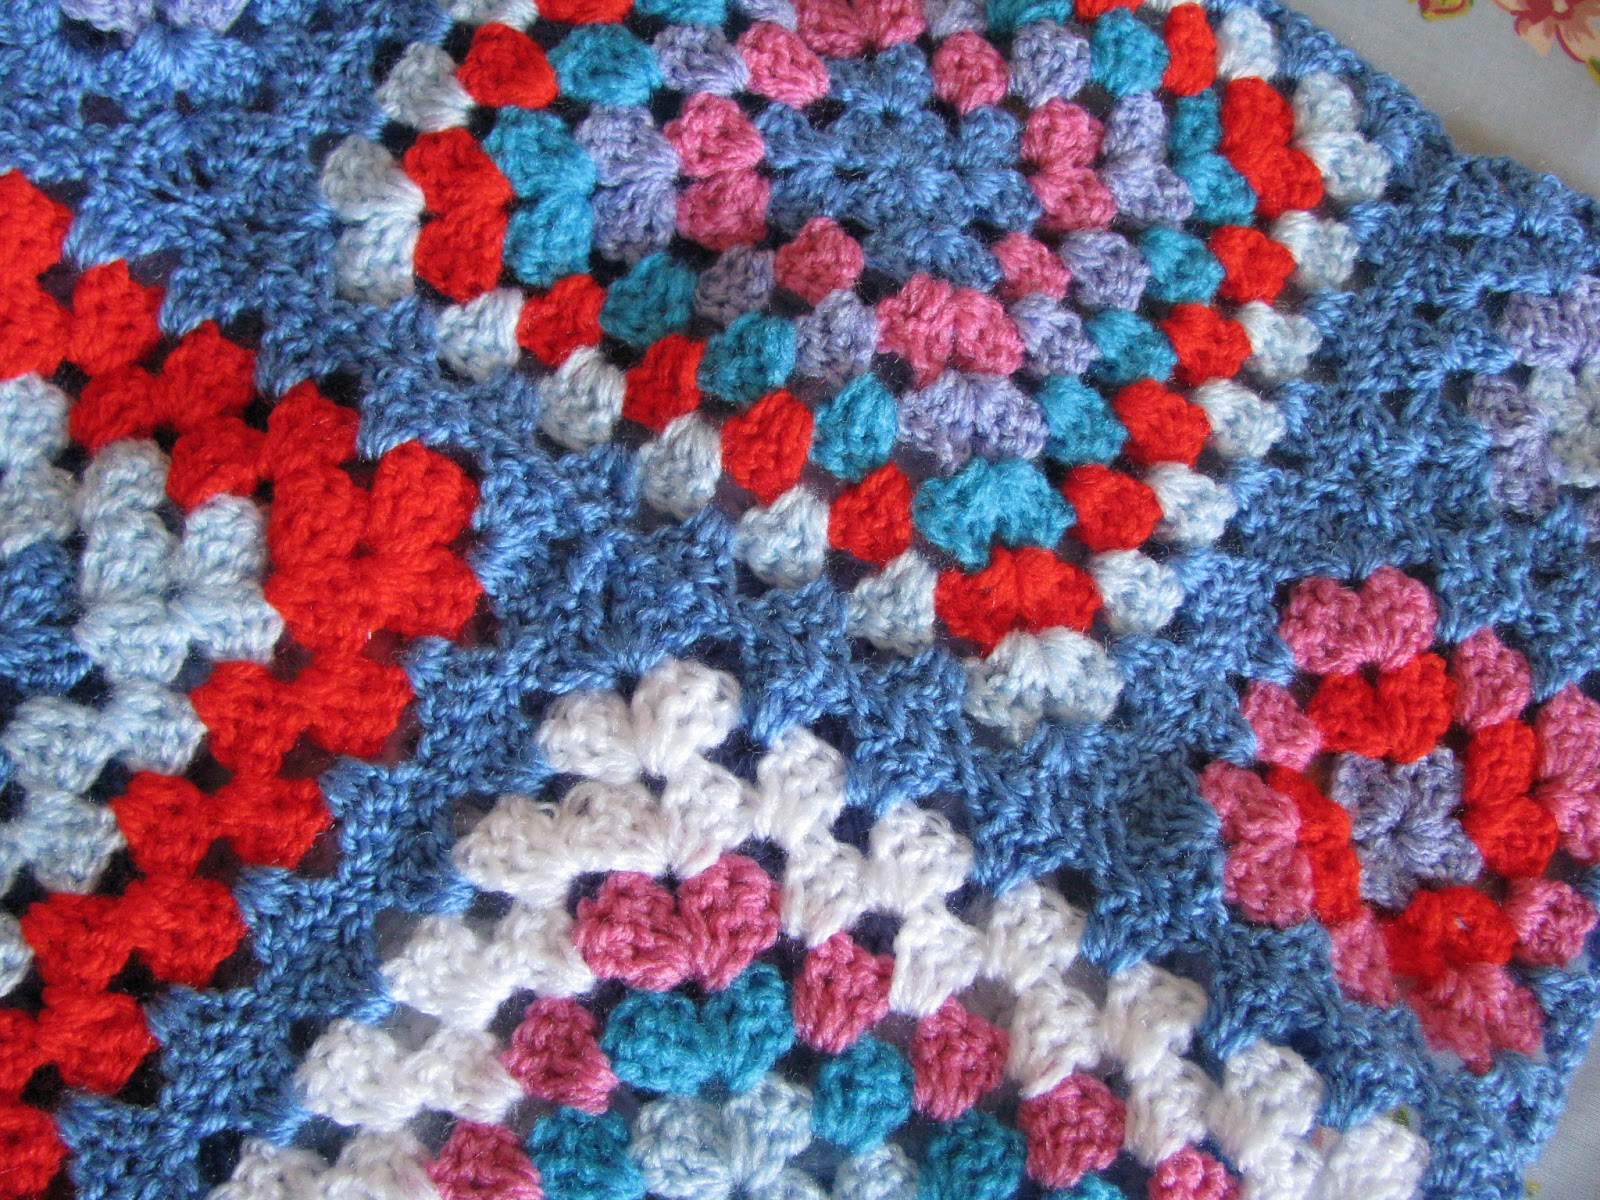 Crocheting Grandma : Shortbread & Ginger: Bright Crochet Granny Squares